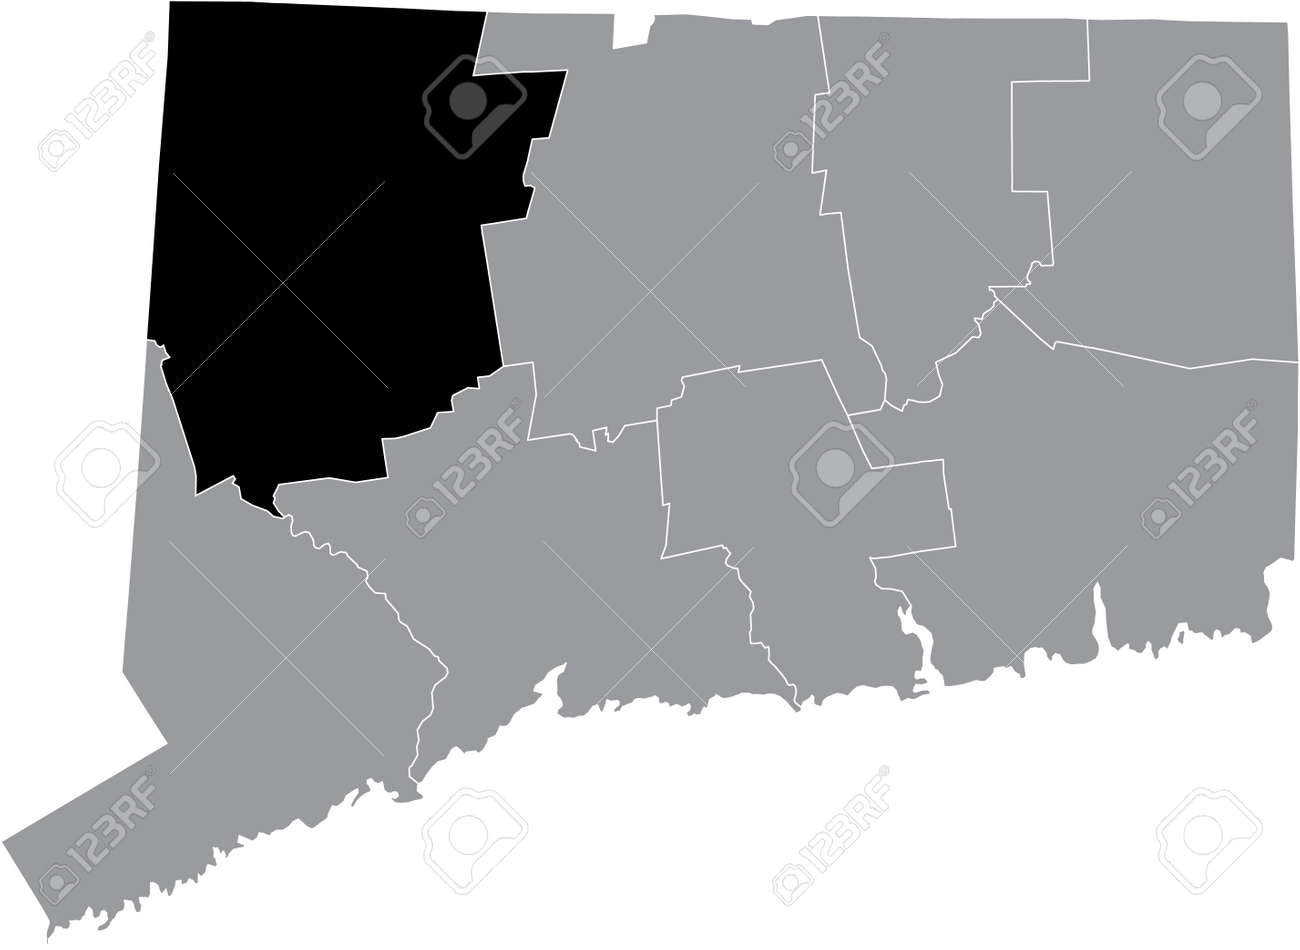 Black highlighted location map of the US Litchfield county inside gray map of the Federal State of Connecticut, USA - 169984402